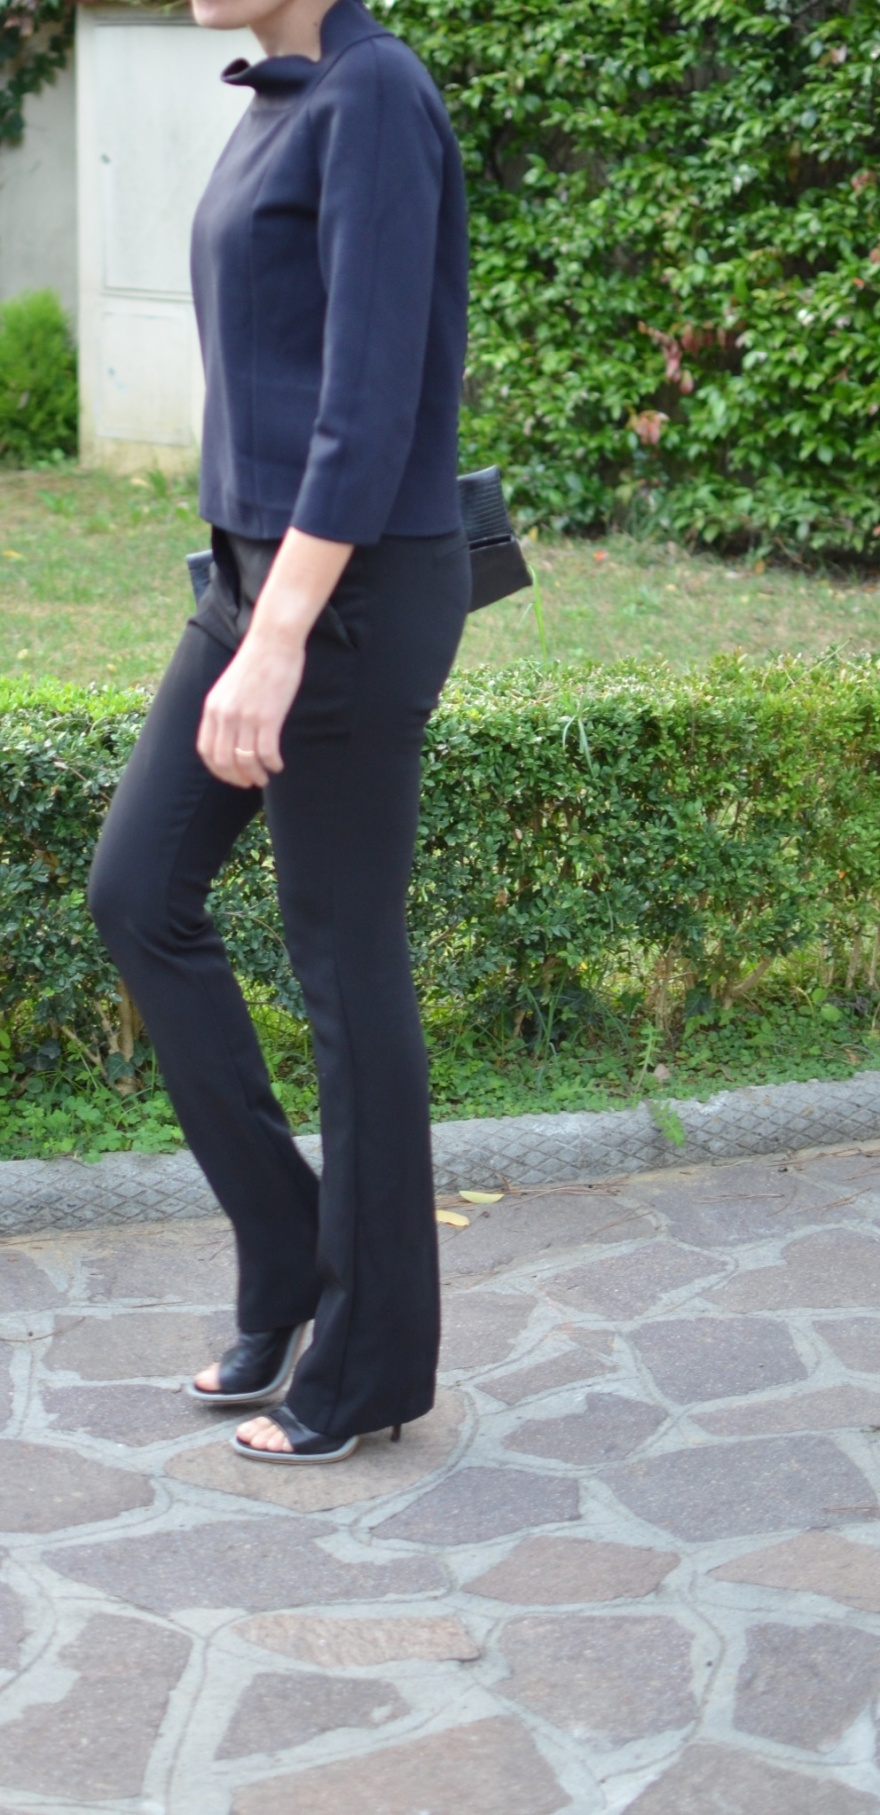 Massimo Rebecchi pants, Max Mara sweater, neoprene, Balenciaga shoes, vintage da, blue and black, Max Mara, Balenciaga, black sandals, Florence, mysouldress, italian fashion blogger, vintage blog.